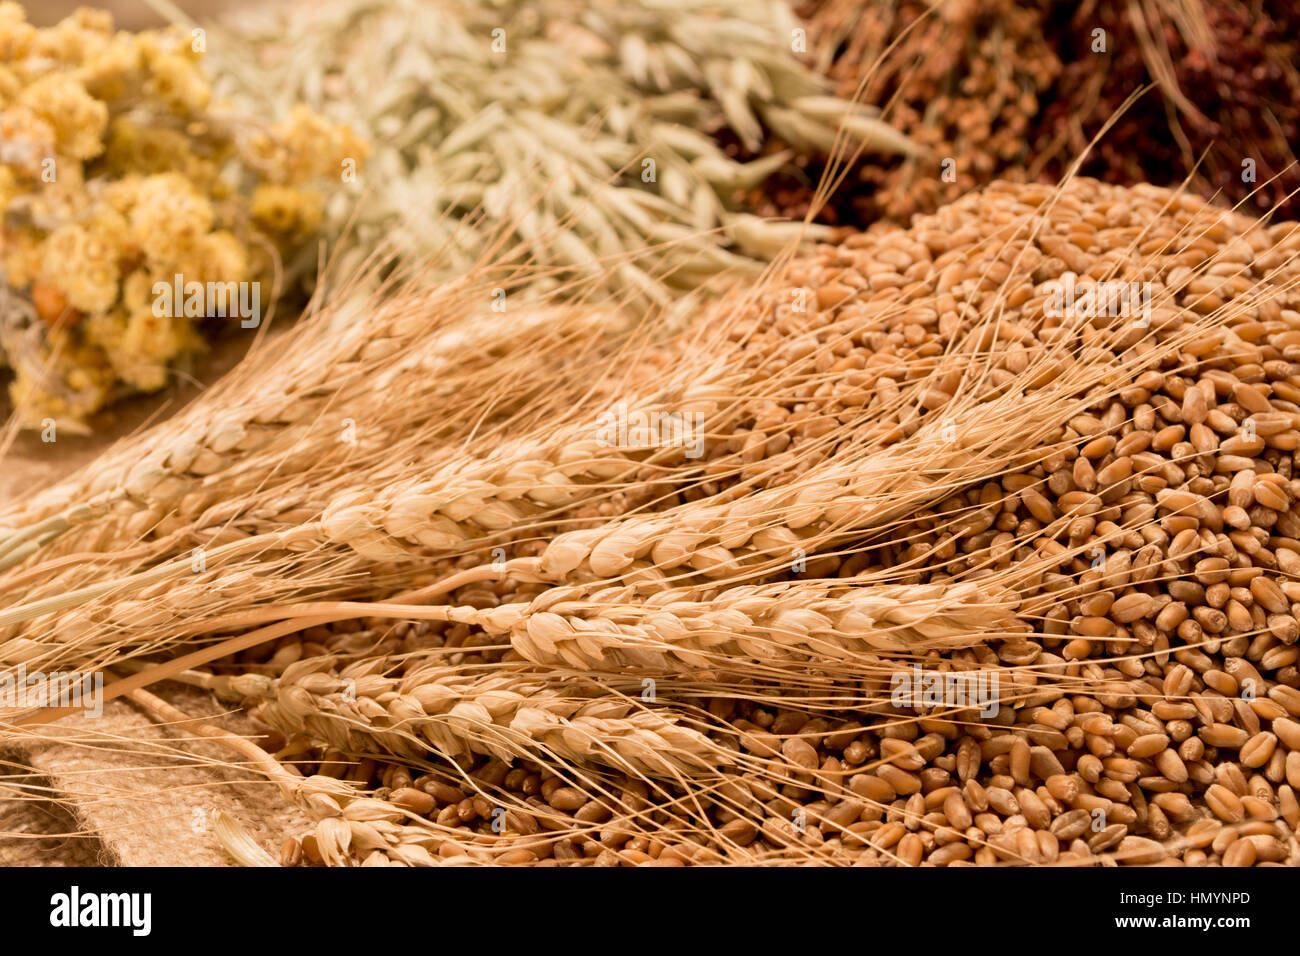 wheat, ears of corn and grasses - Stock Image